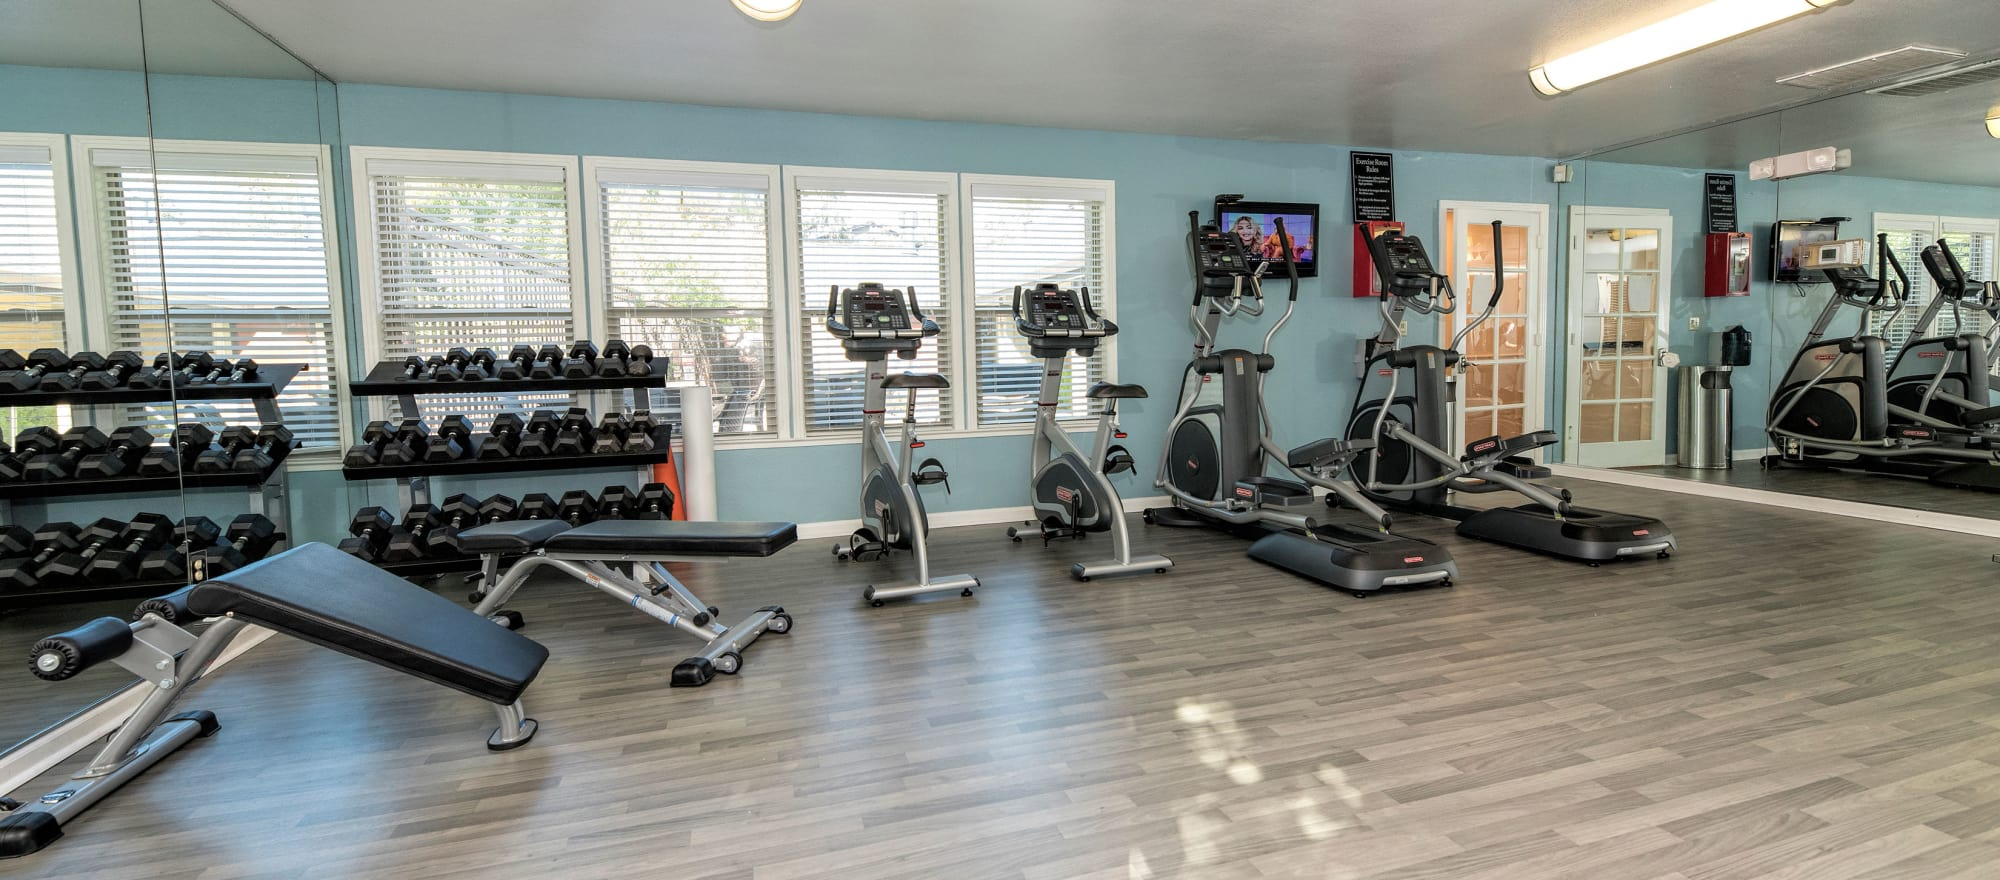 State-of-the-art fitness center at Sterling Heights Apartment Homes in Benicia, California